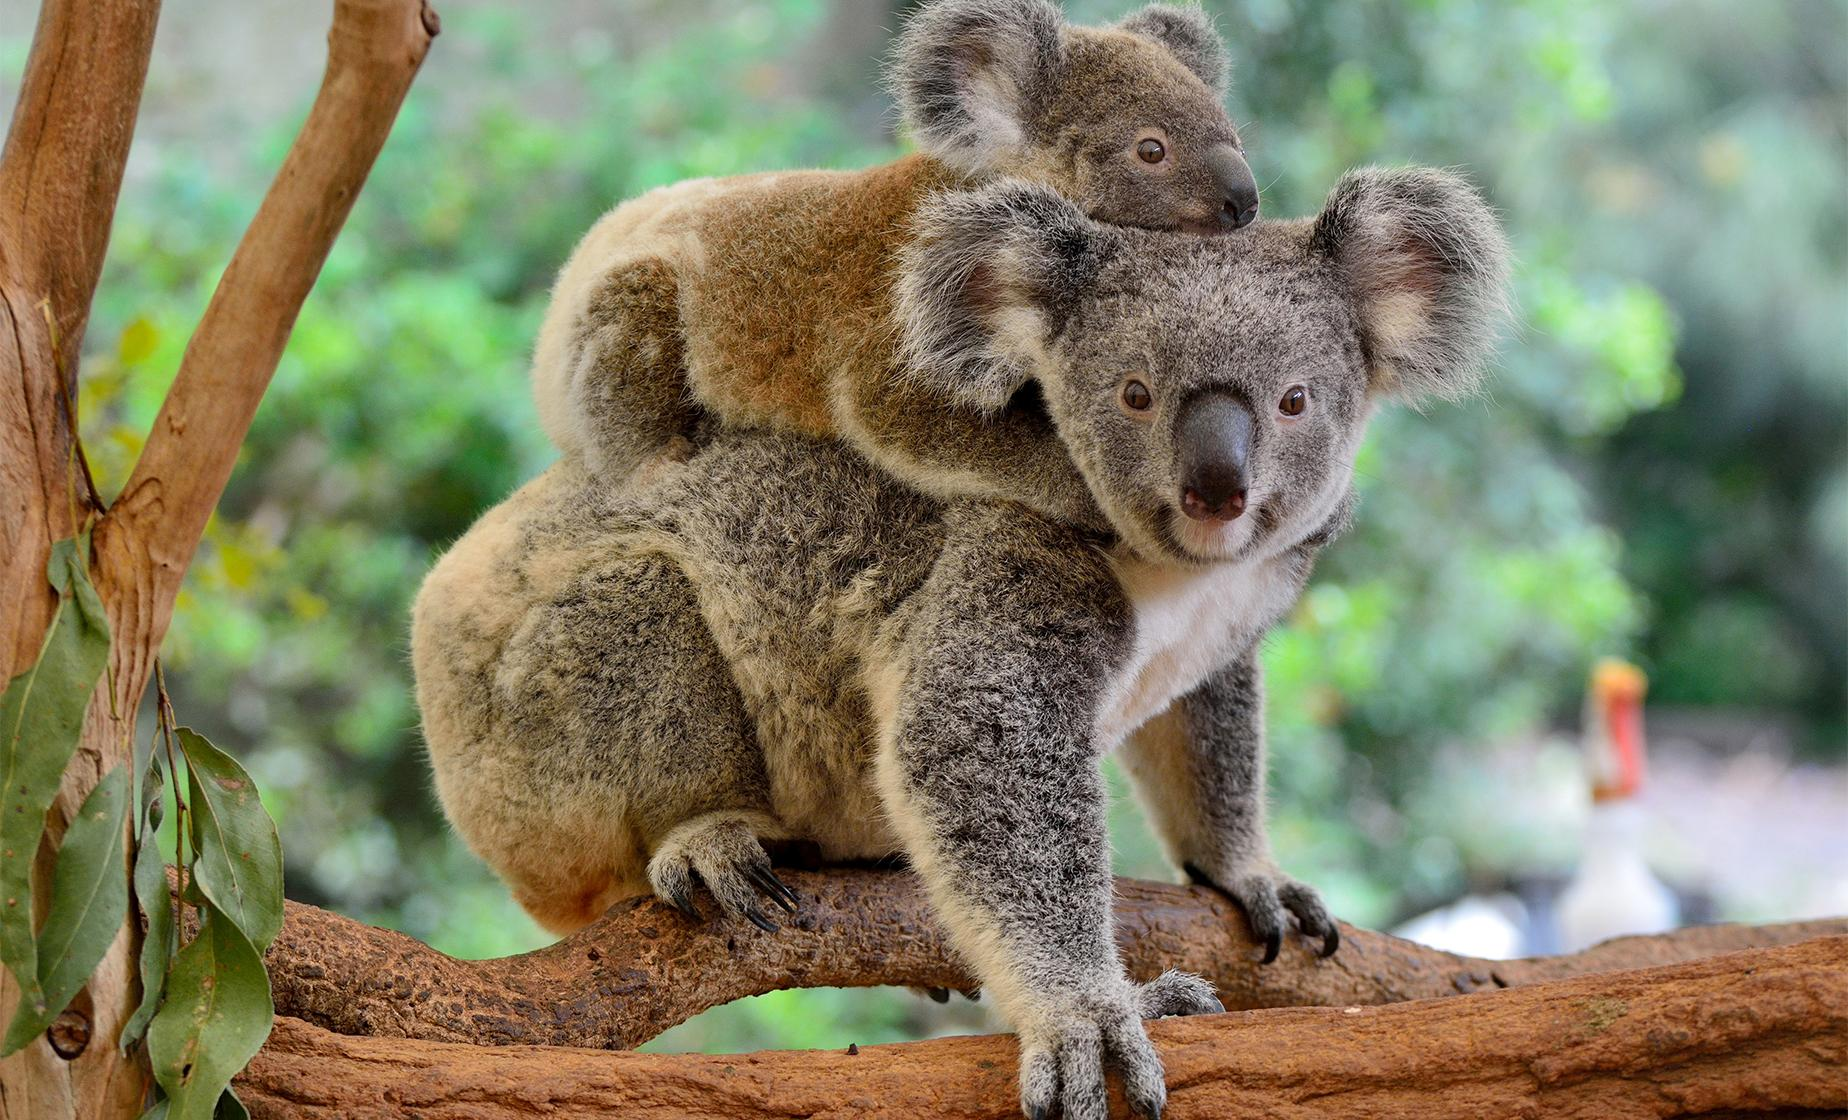 Koala Sanctuary & Brisbane River Cruise